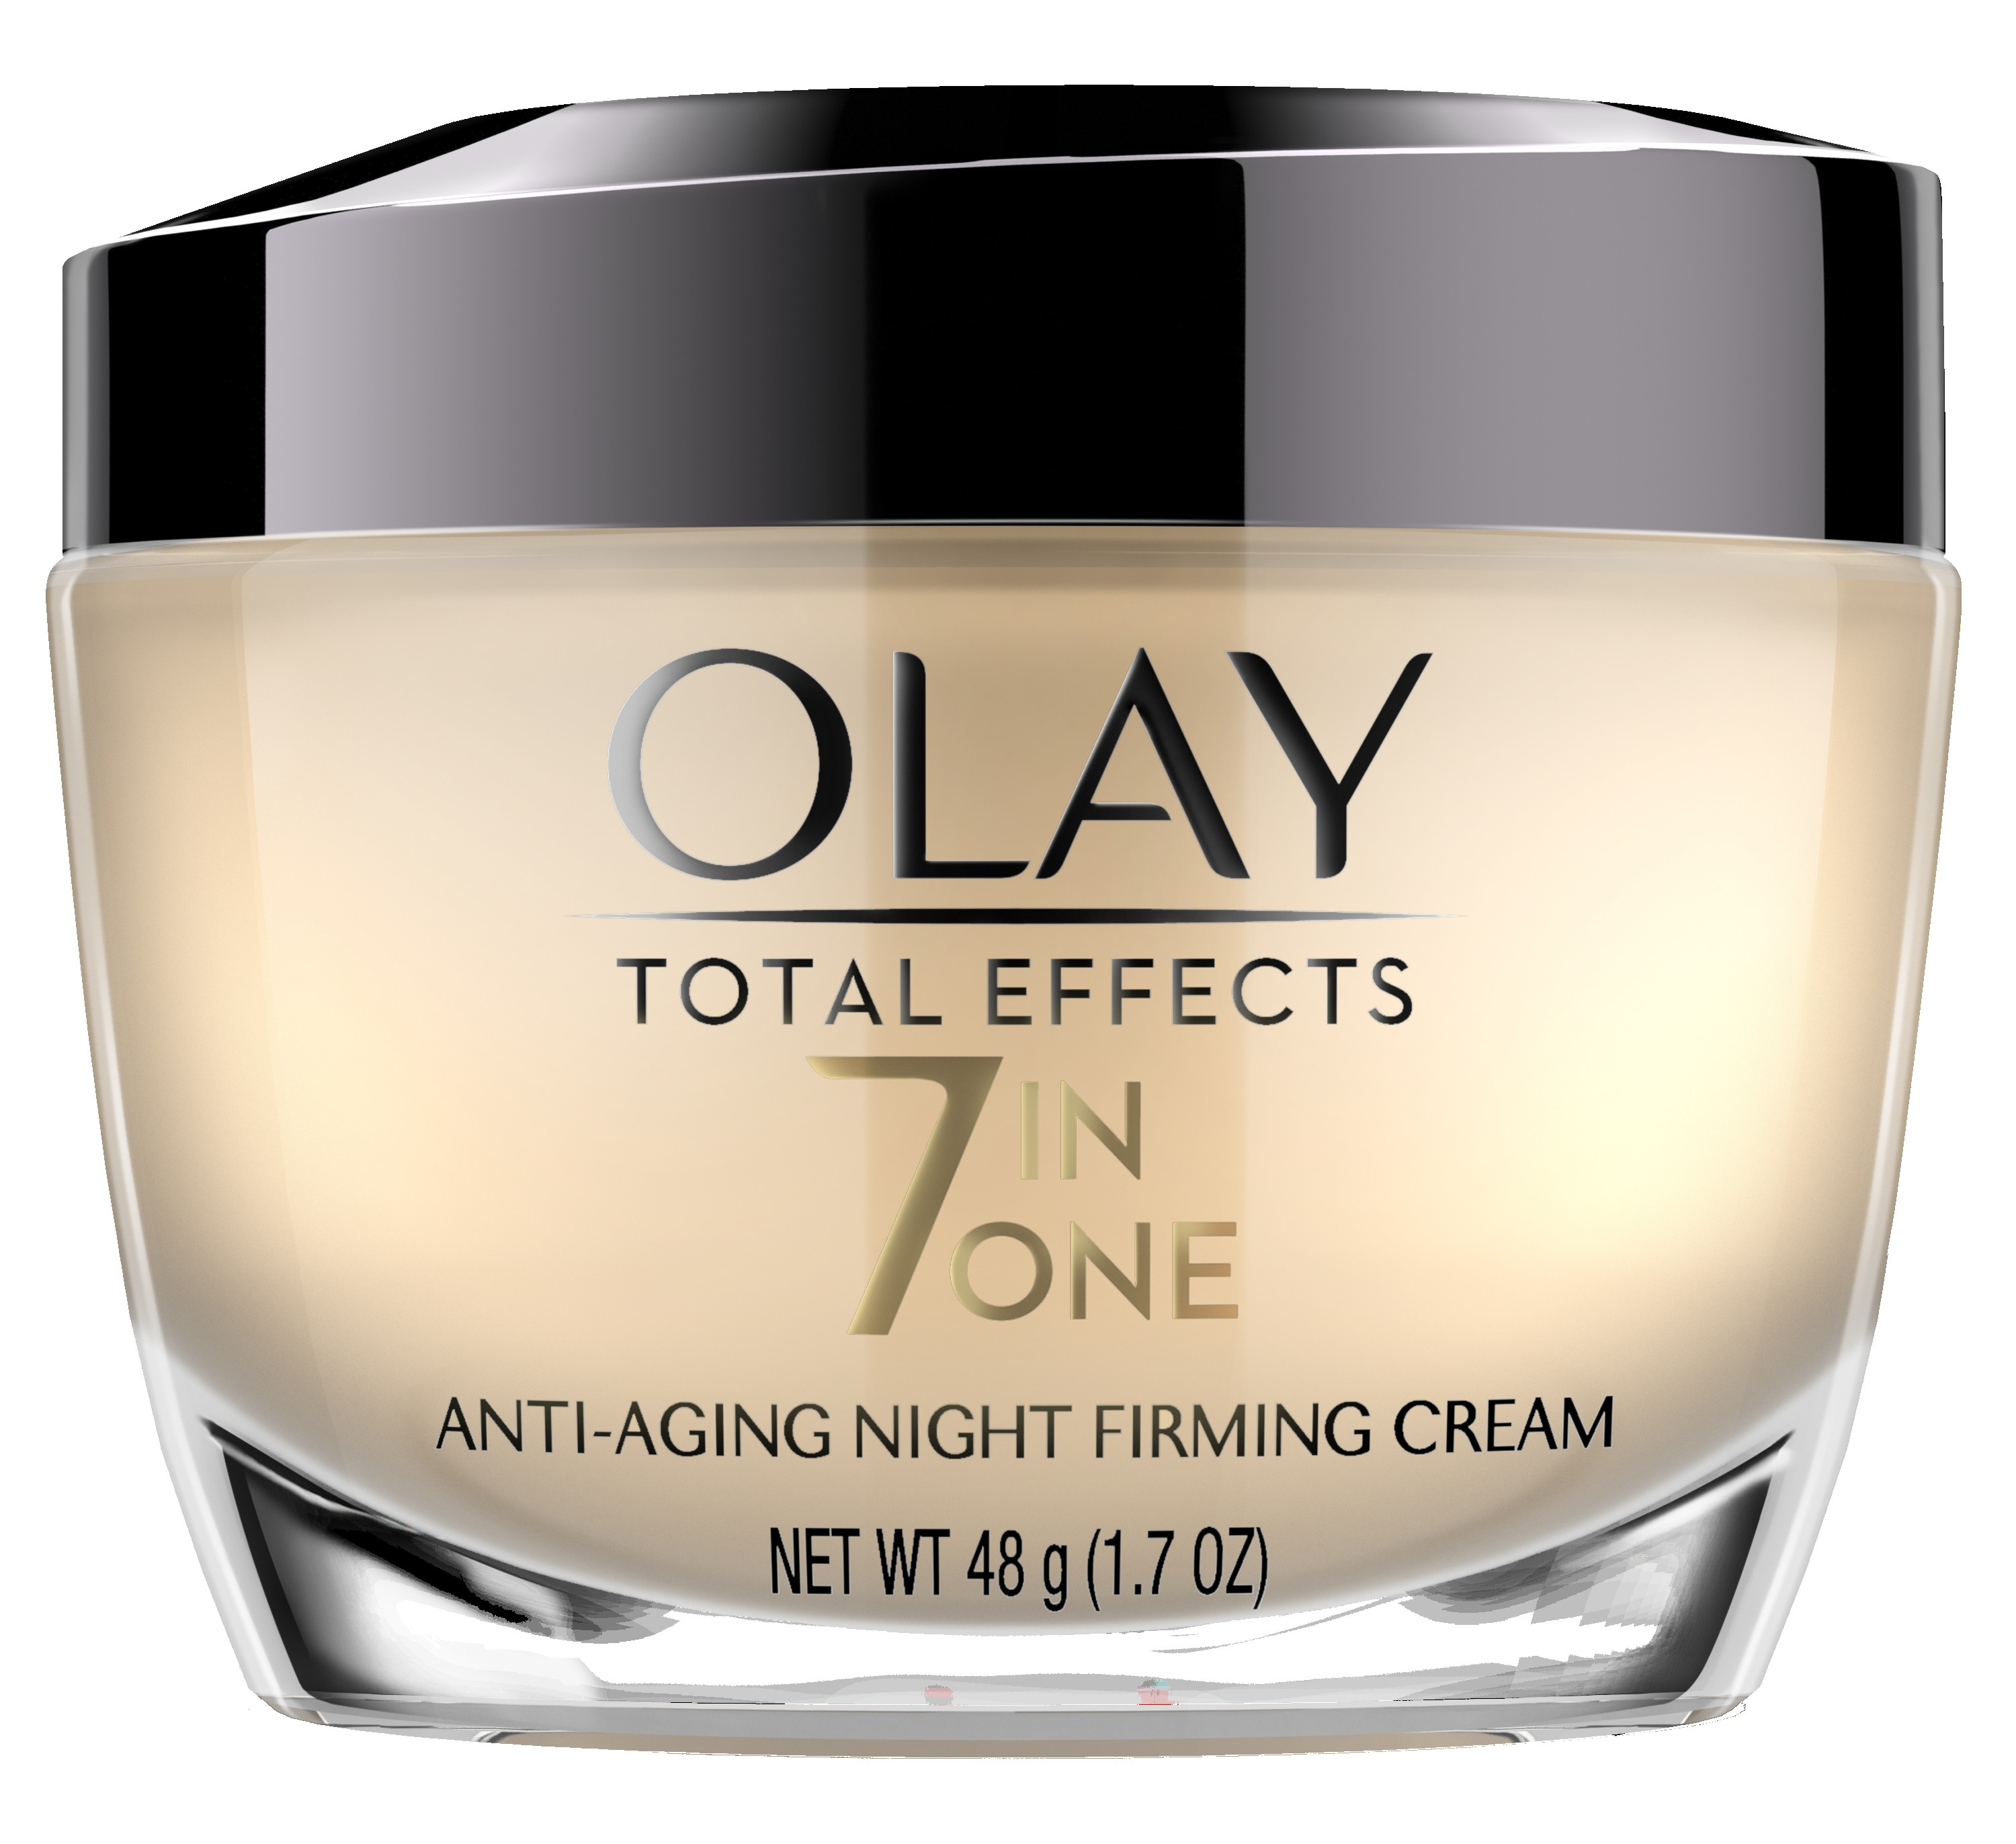 Olay Total Effects 7-In-1 Anti-Aging Firming Night Cream